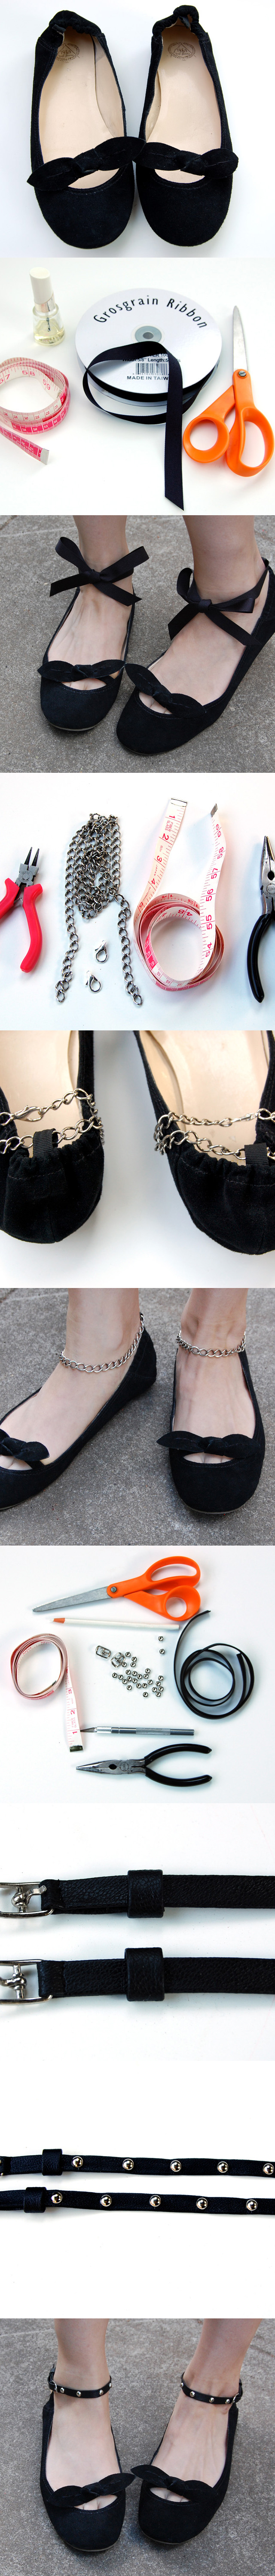 Flats with Strands and Chains